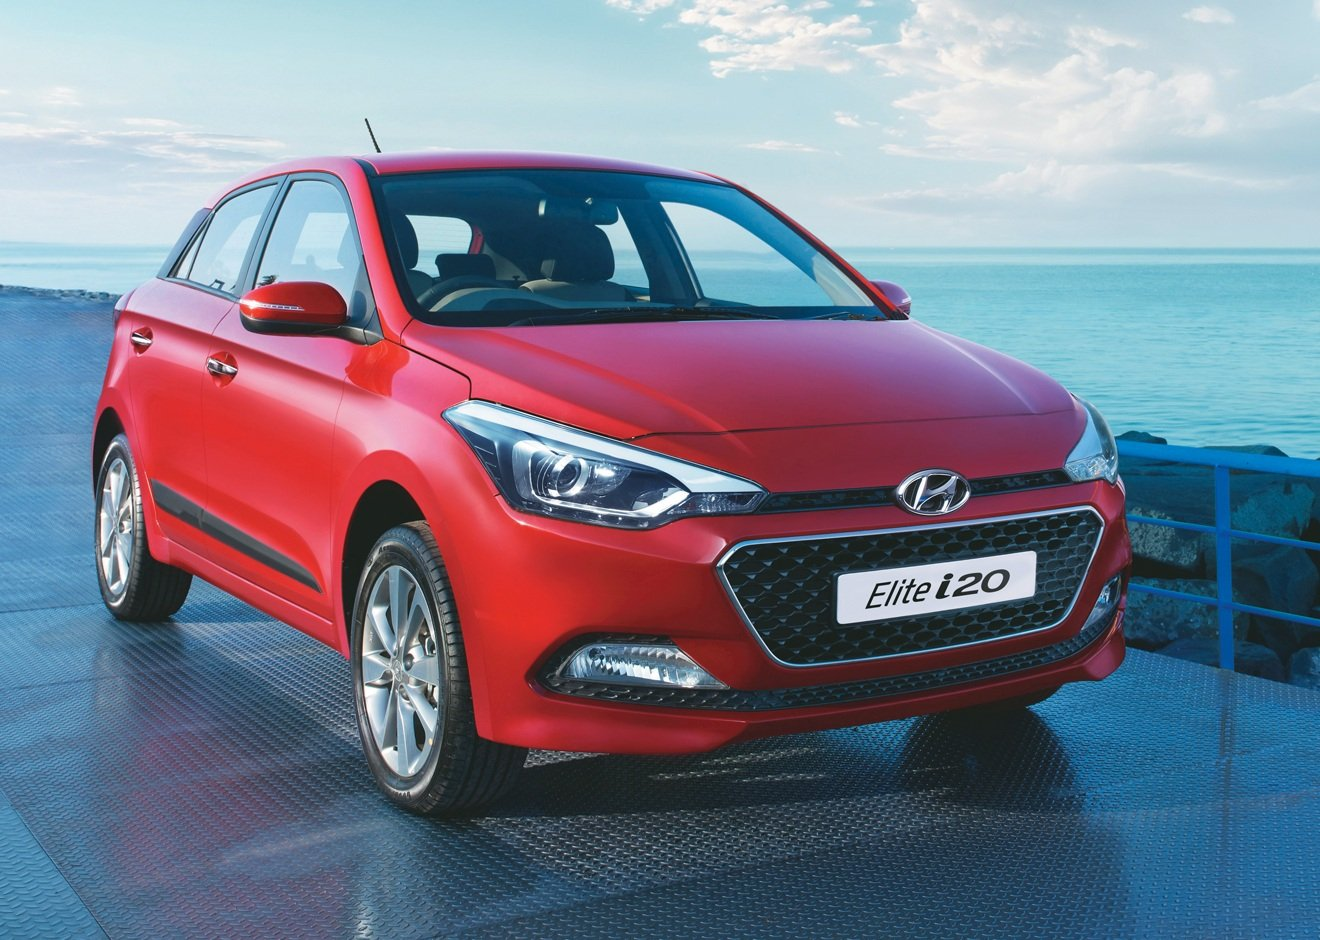 Hyundai Elite i20 BS6 launched